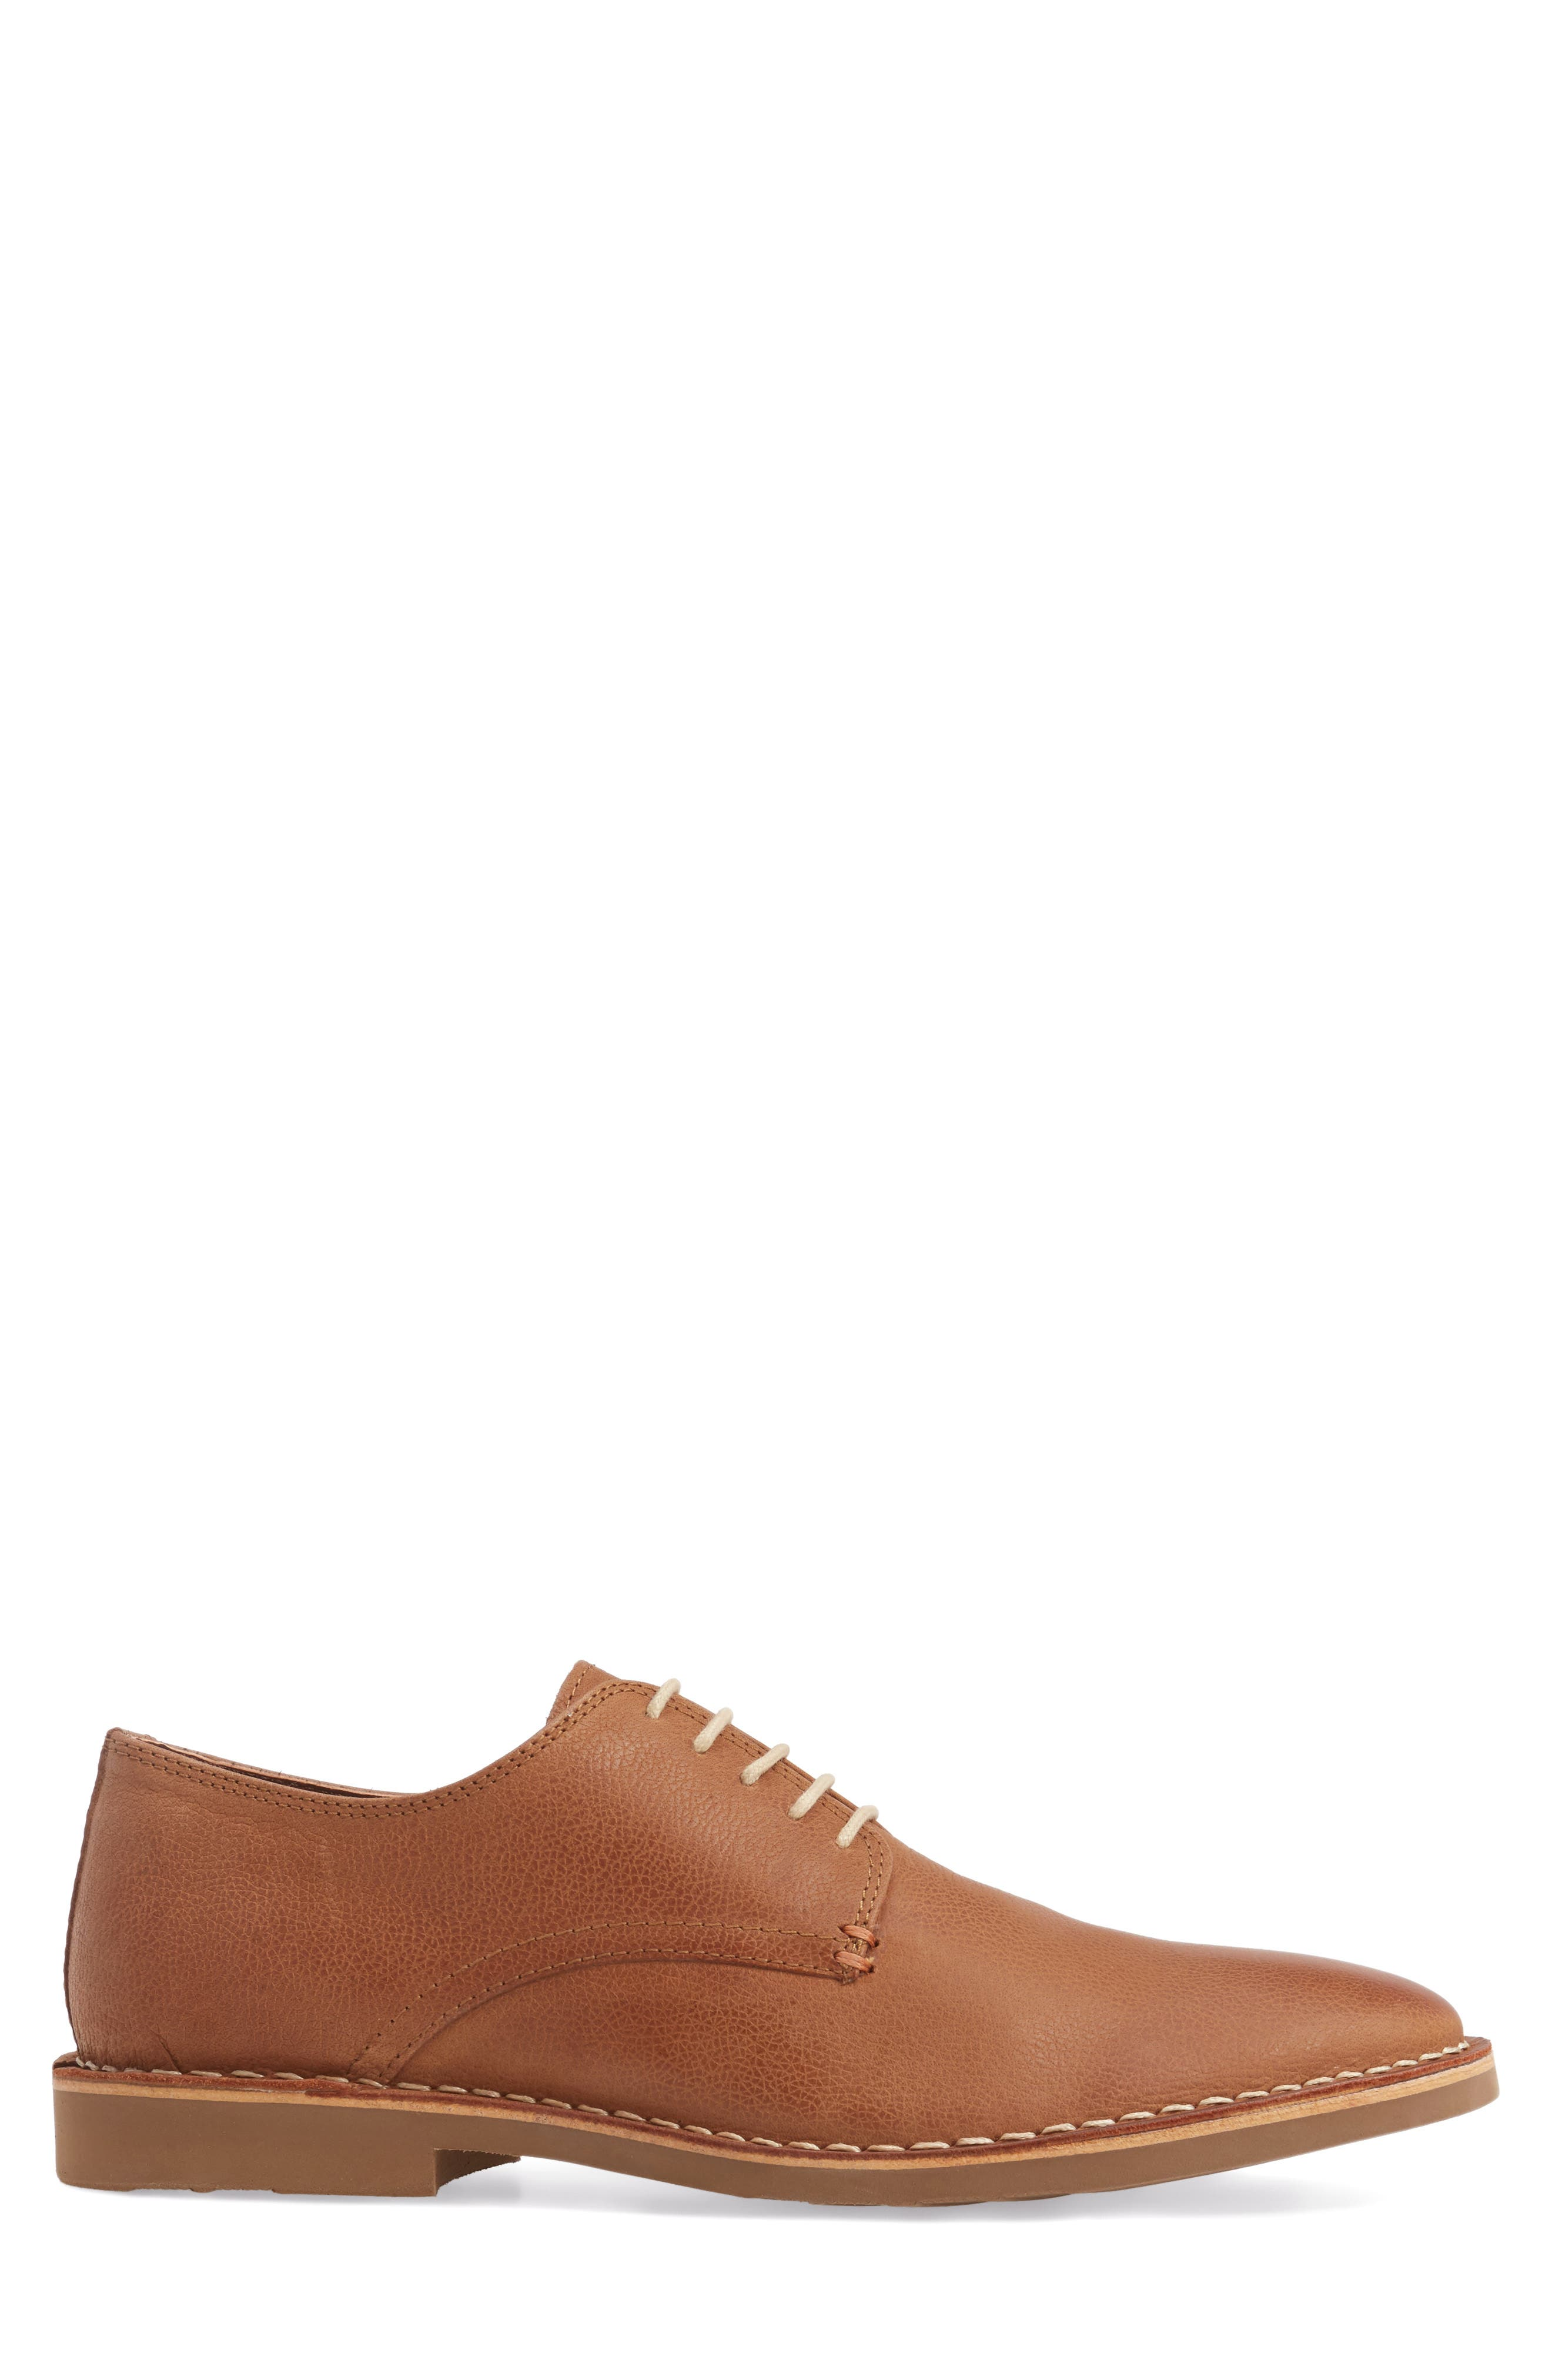 Kenneth Cole New York En-Deer-ing Derby,                             Alternate thumbnail 3, color,                             Tan Leather